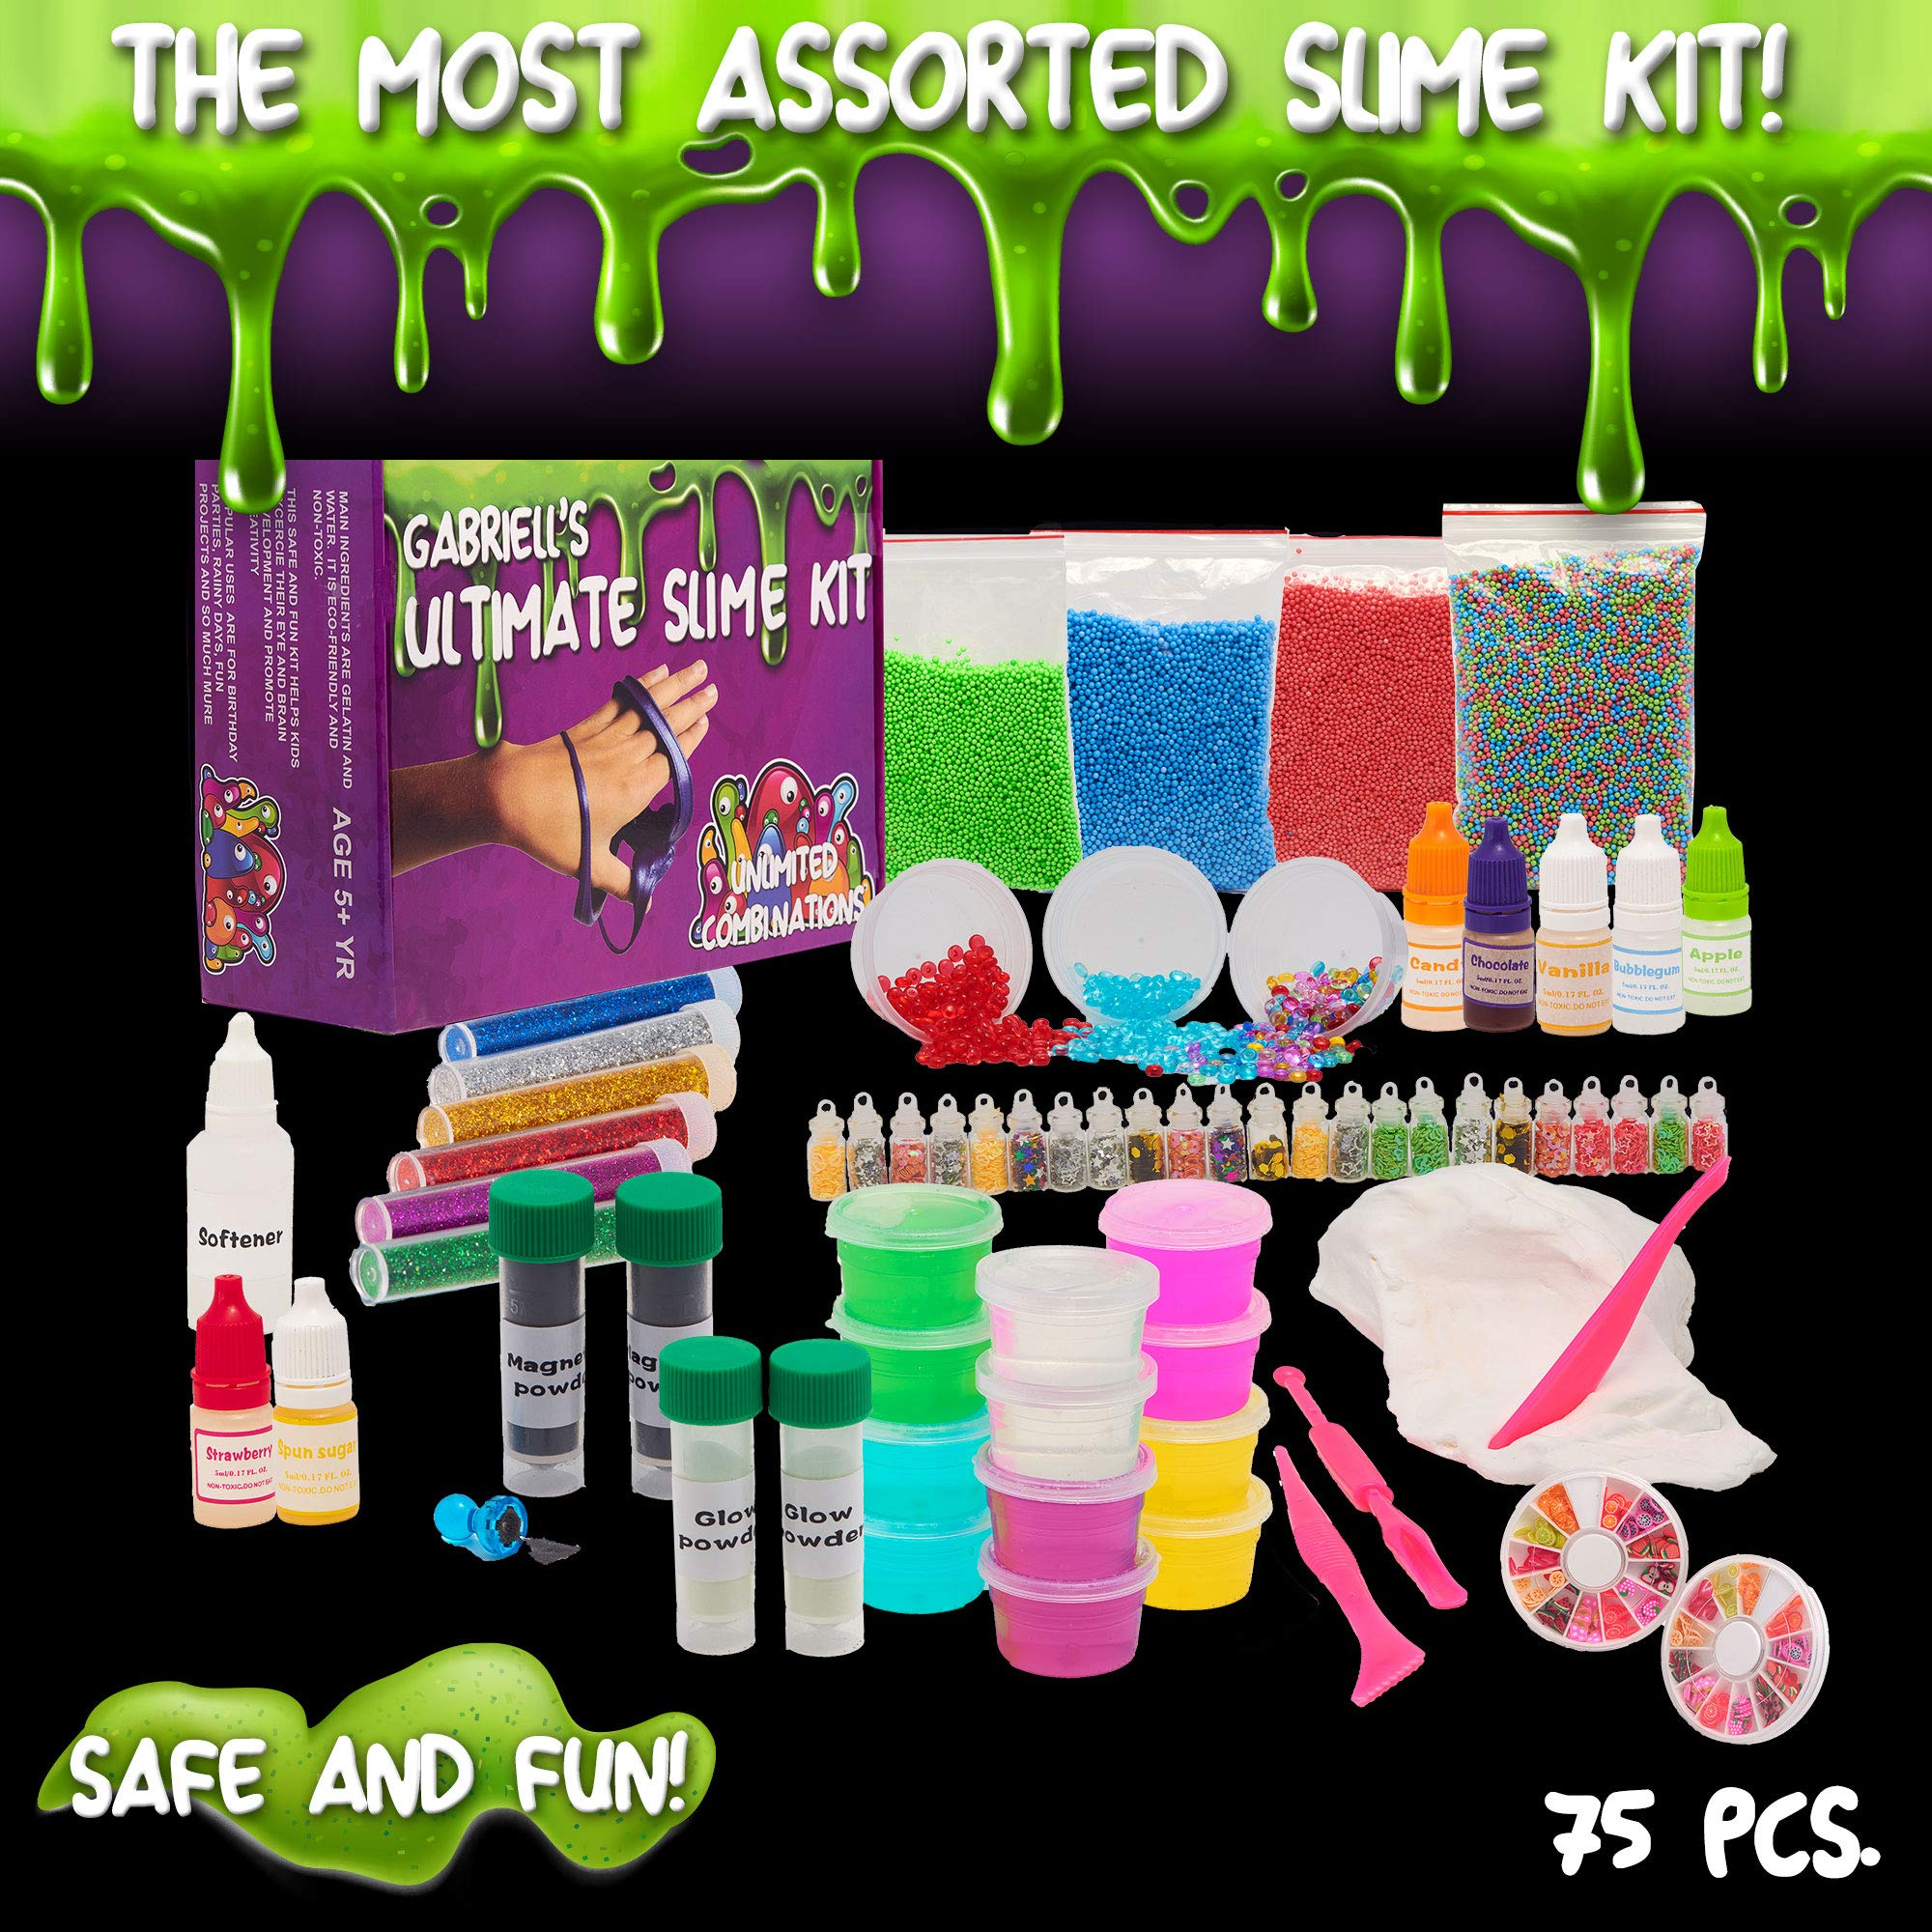 Ultimate Slime Kit Supplies with Magnet Powder,Glow in the dark Powder, 7 Different scents and over 75 different slime accessories